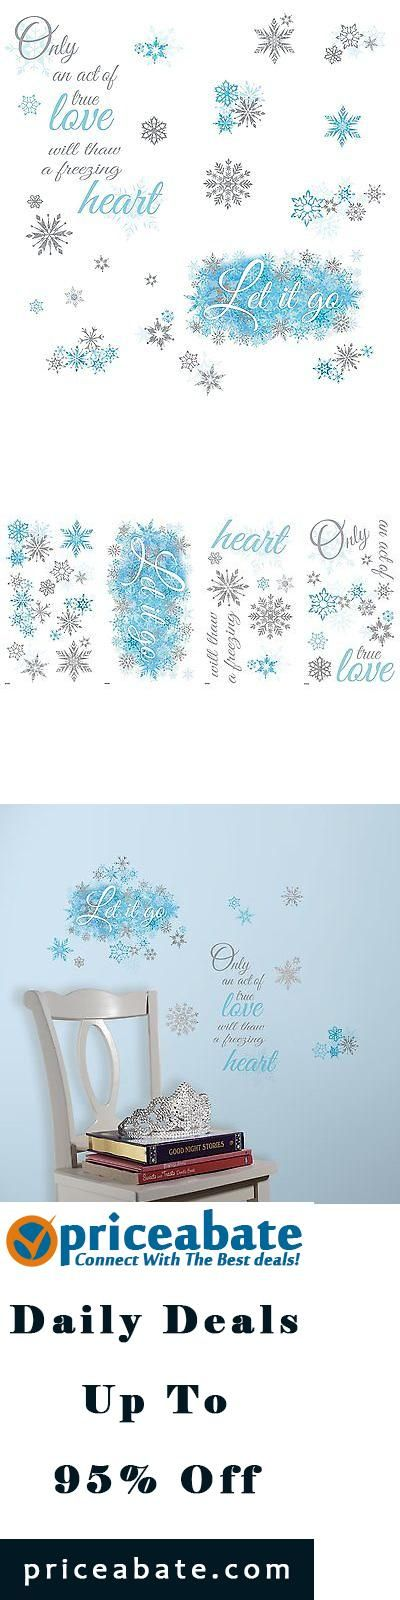 #Priceabate FROZEN LET IT GO Quote Wall Decals Snowflakes Disney Phrase Room Decor Stickers - Buy This Item Now For Only: $15.99